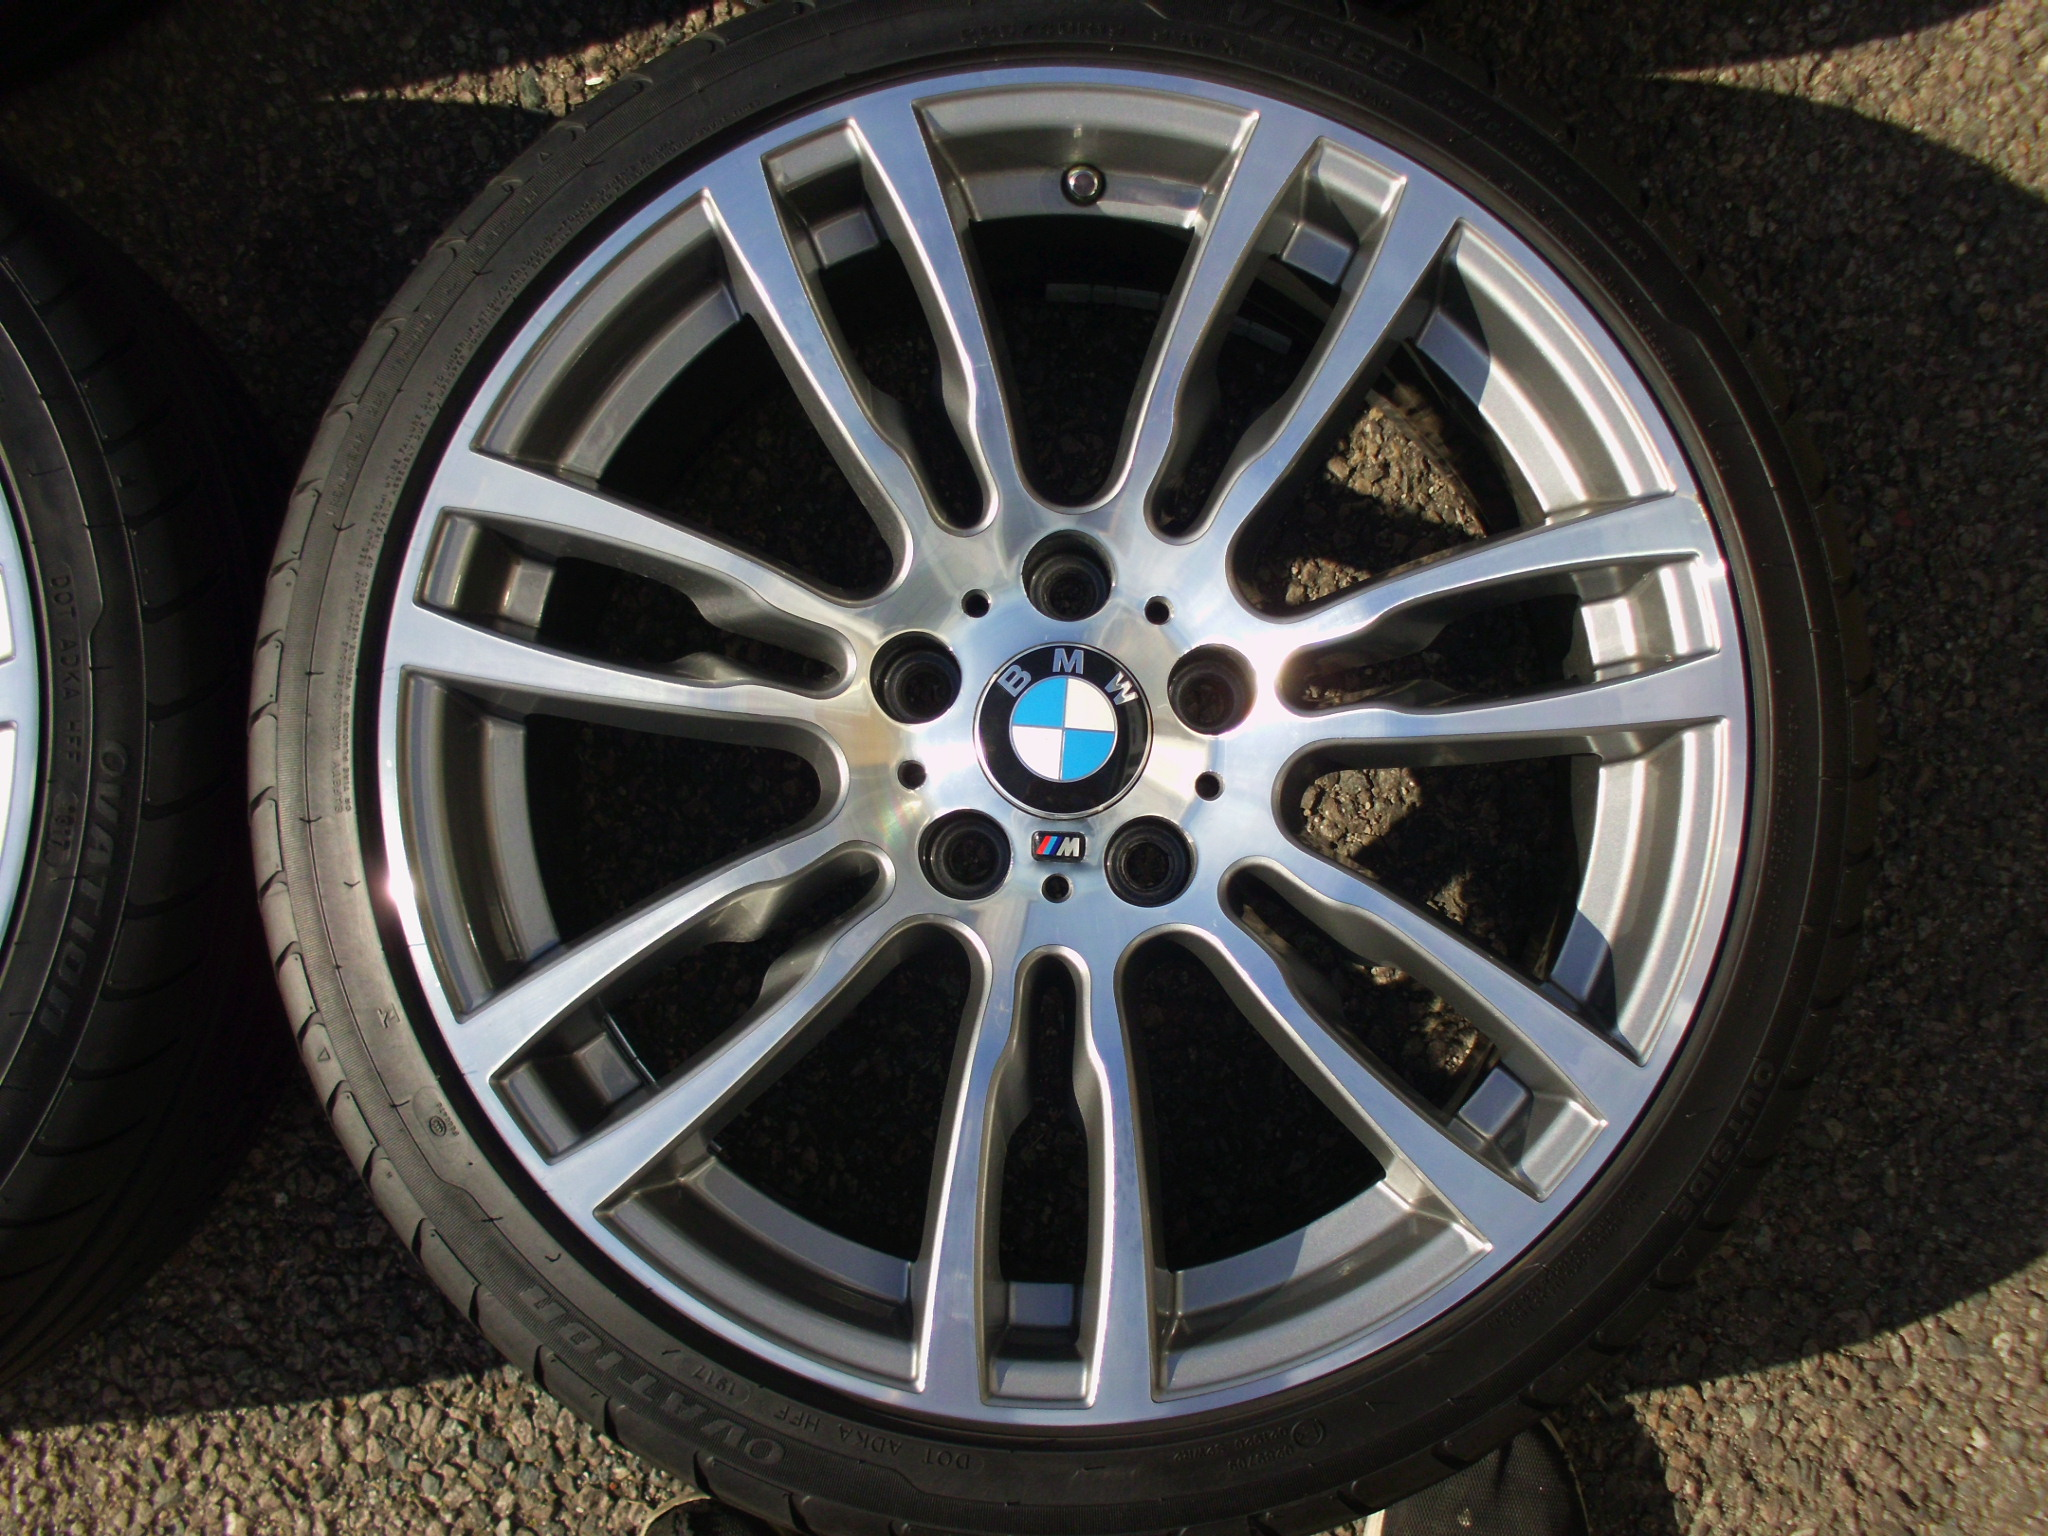 "USED 19"" GENUINE STYLE 403 F30/31 M DOUBLE SPOKE ALLOYS WHEELS, RECENT REFURB INC GOOD NON RUNFLAT TYRES"